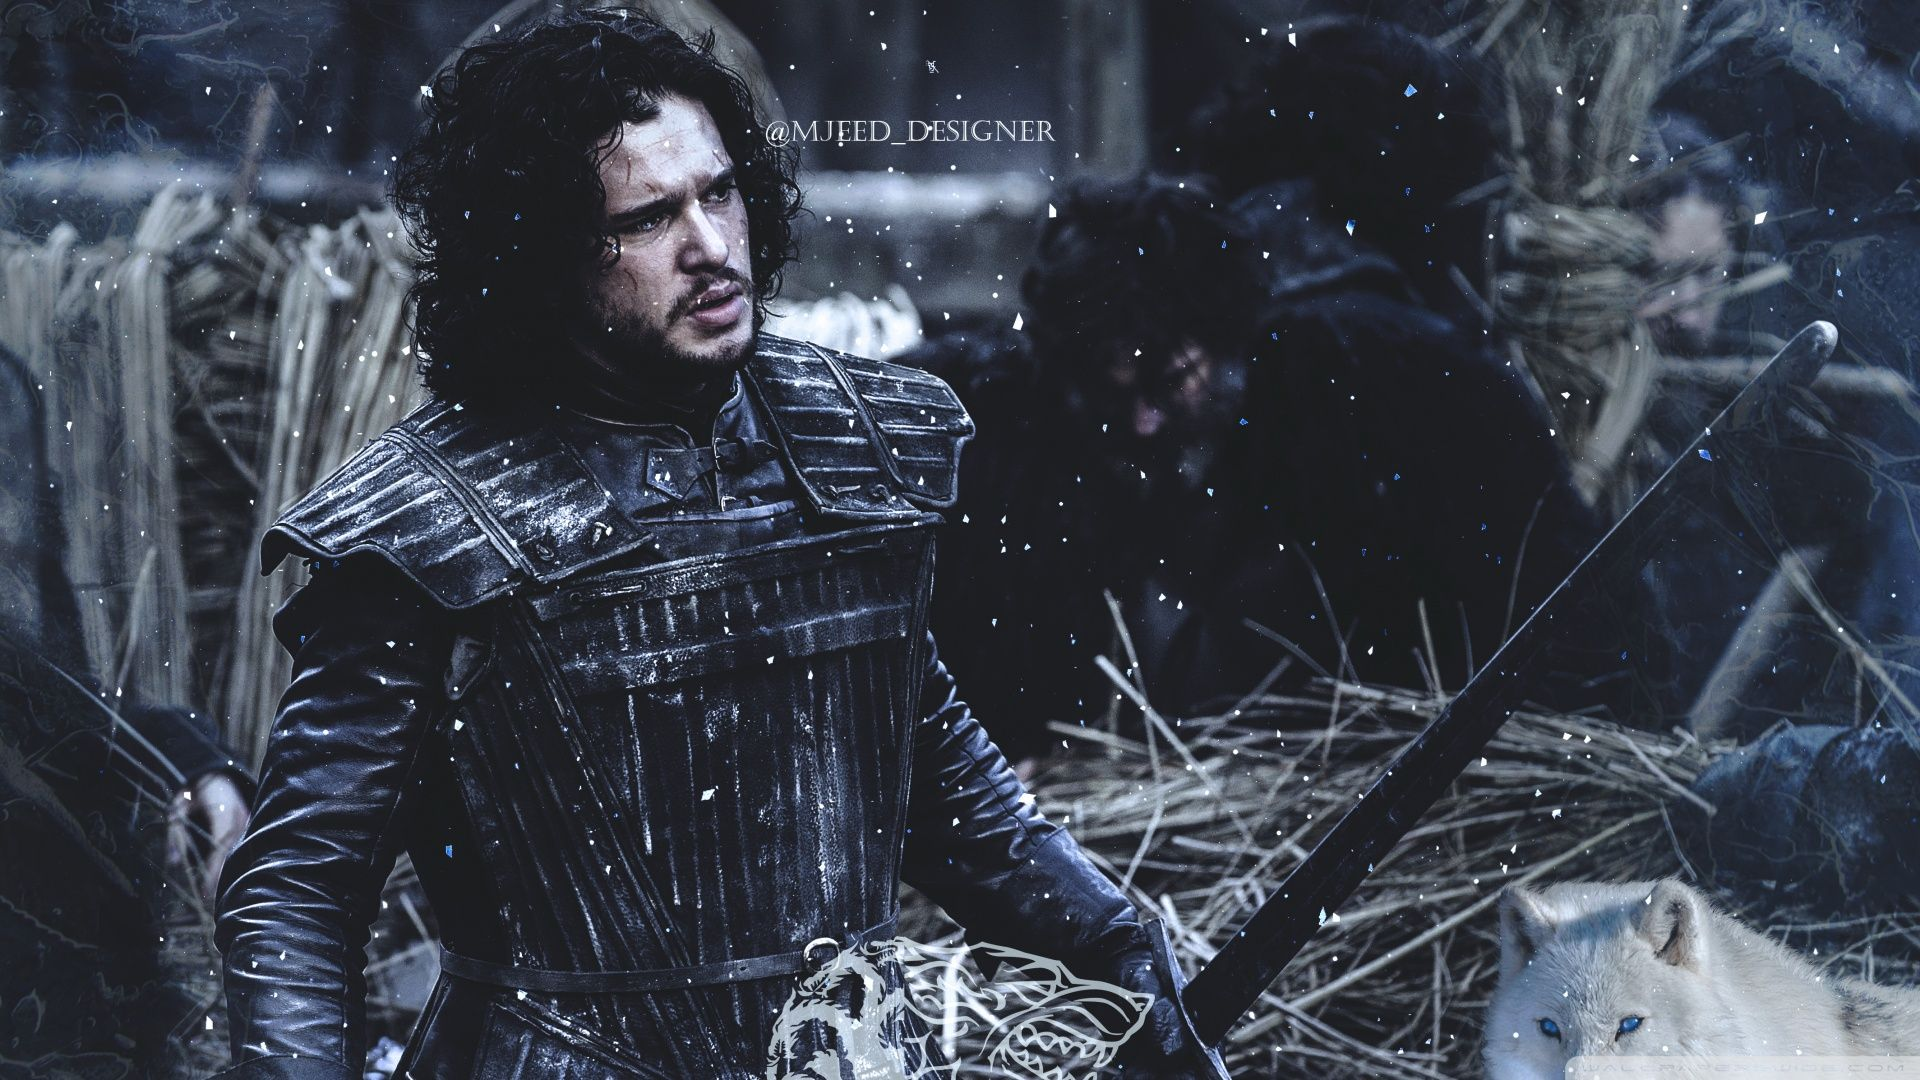 Jon Snow Game Of Thrones Hd Wallpaper Android Hd Wallpaper Android Game Of Thrones Art Android Wallpaper